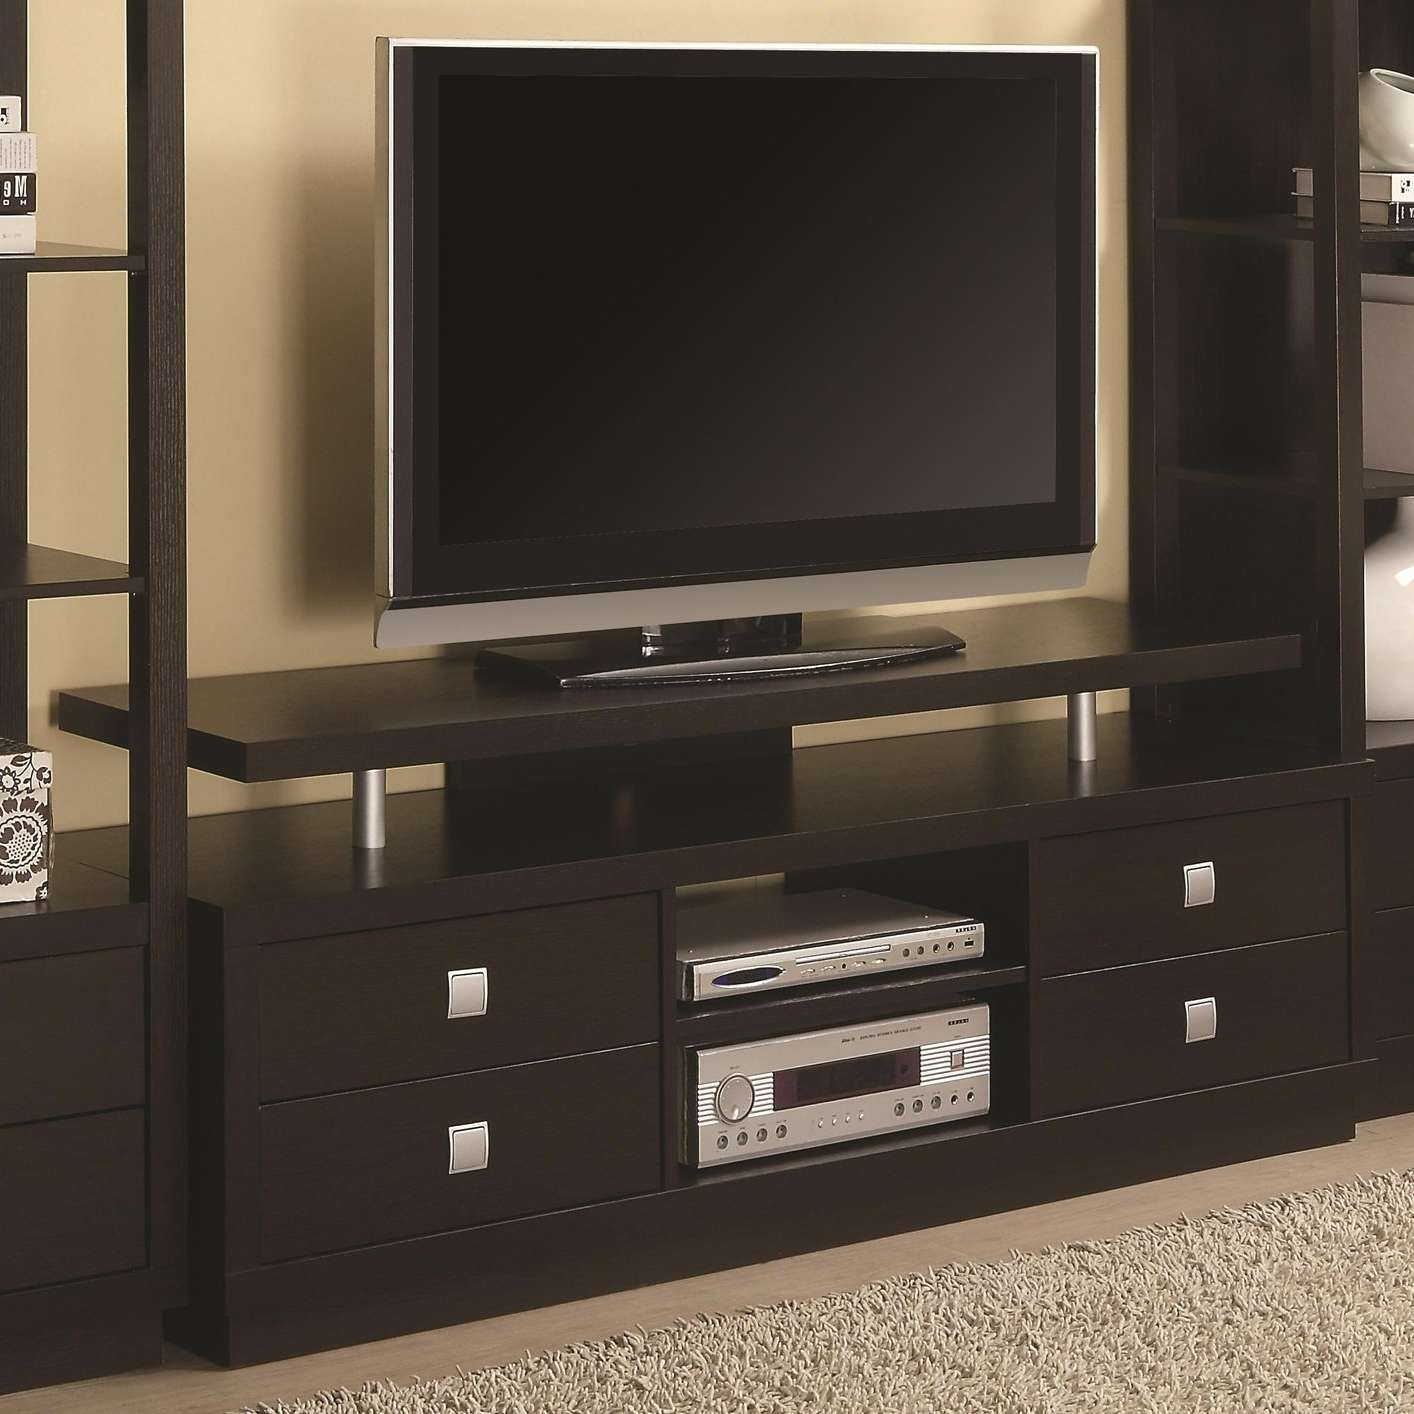 Brown Wood Tv Stand – Steal A Sofa Furniture Outlet Los Angeles Ca Regarding Wooden Tv Stands (View 5 of 15)